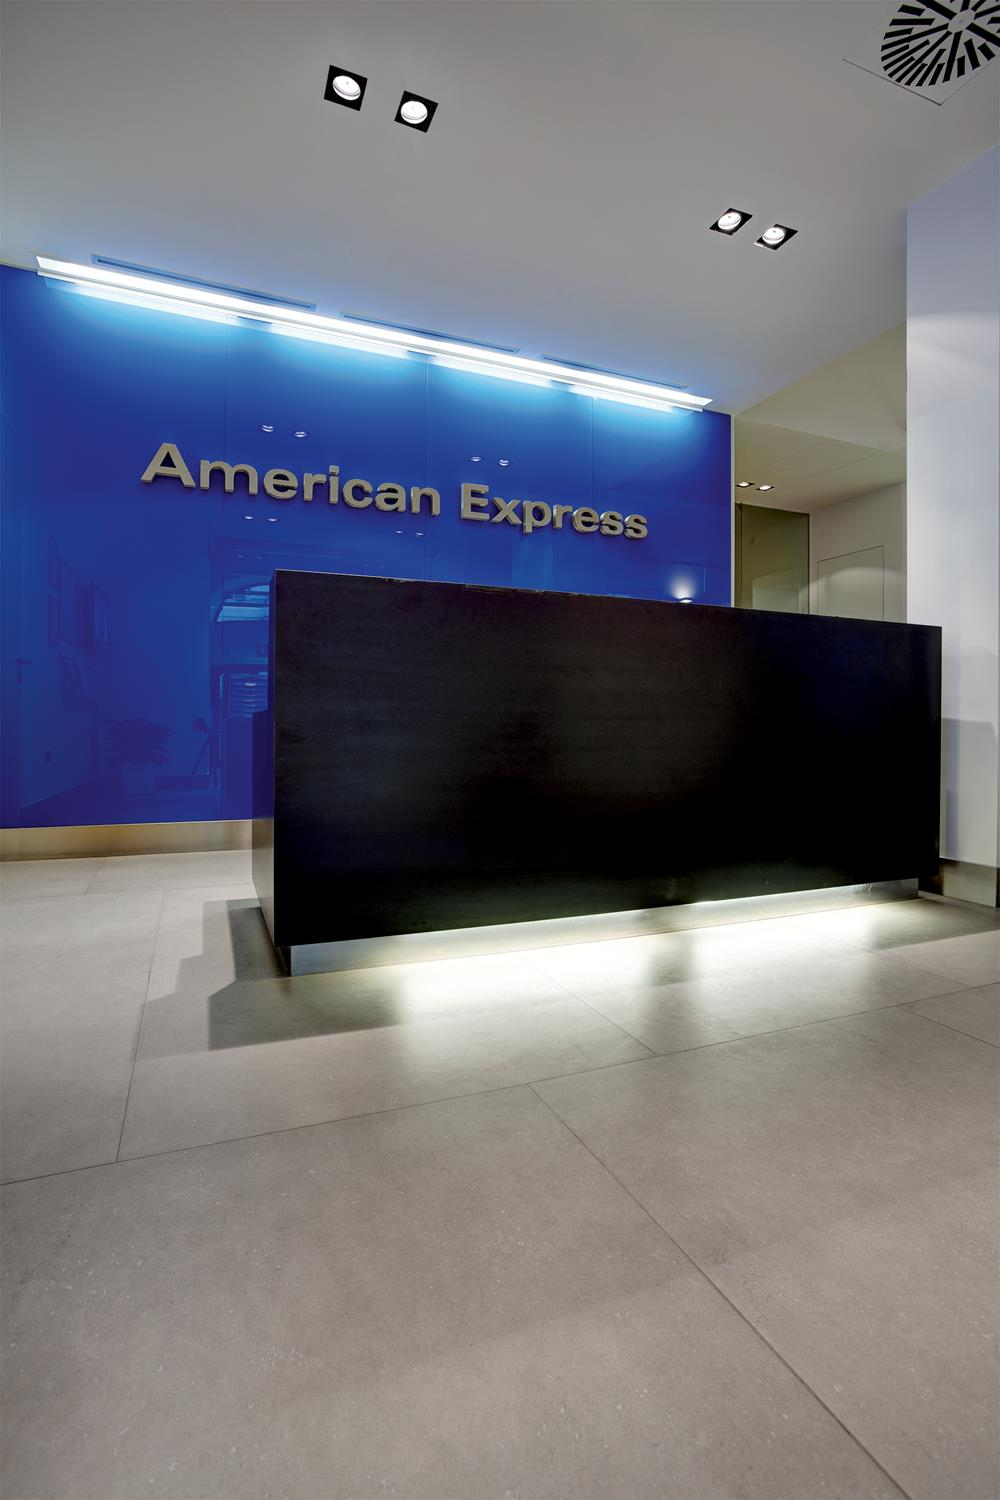 Filial de American Express: Photo 3